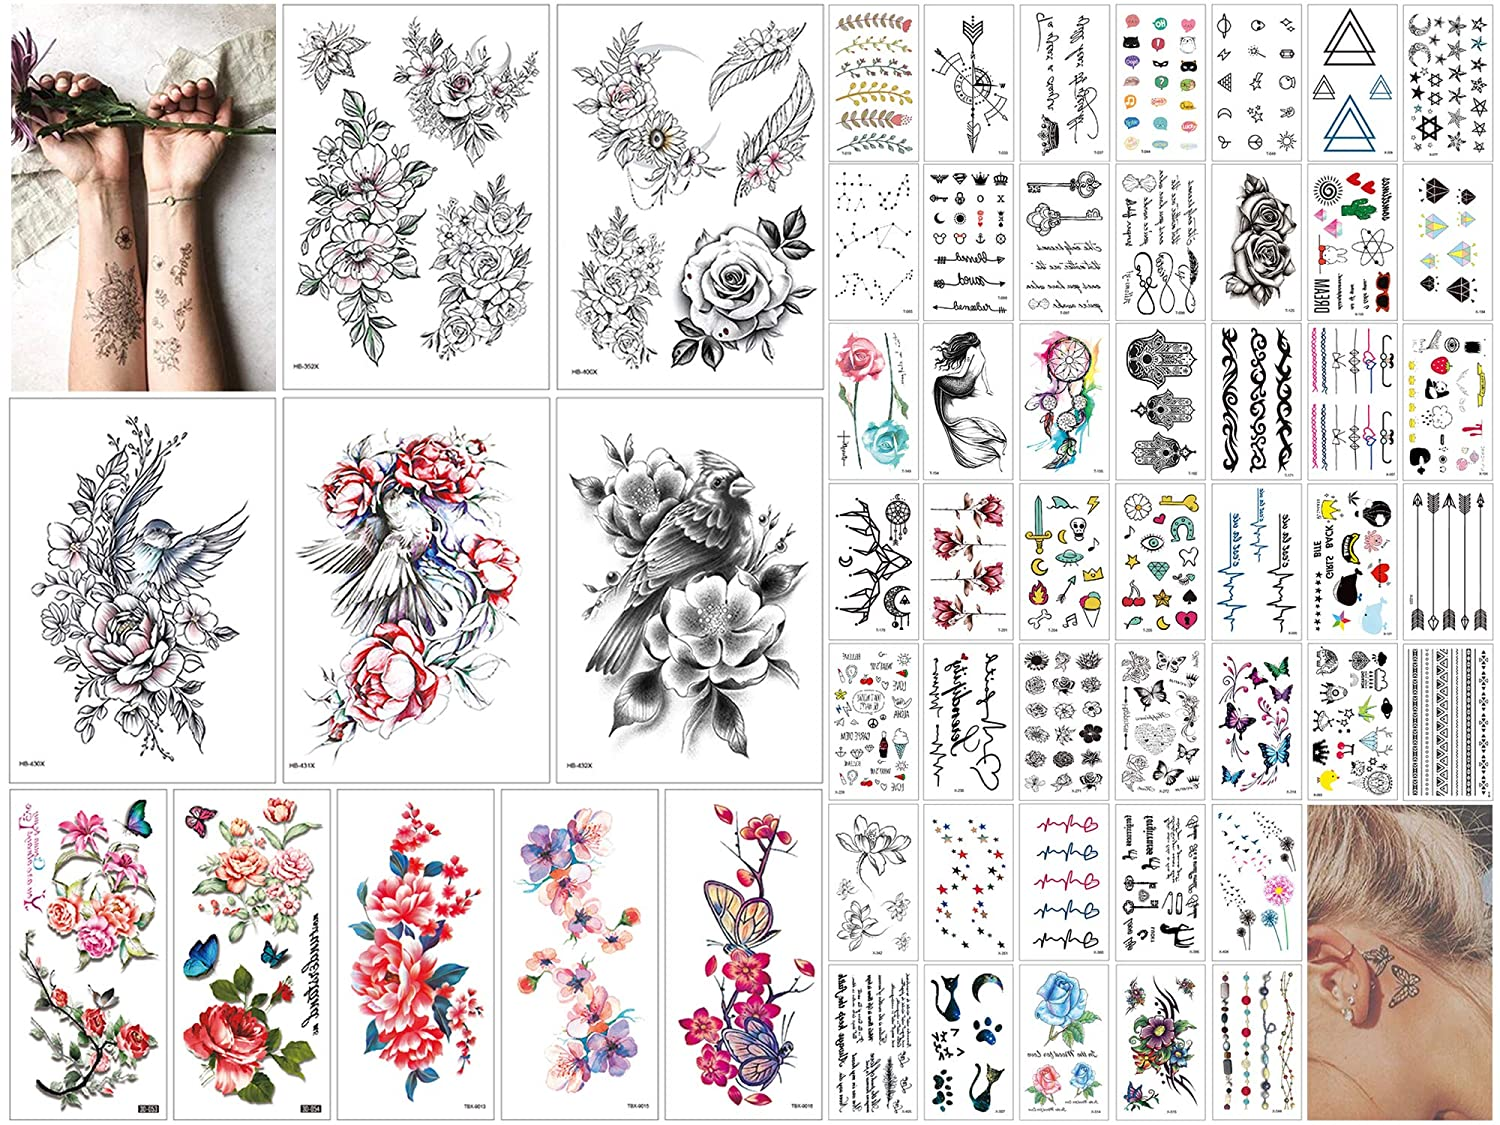 55 Sheets Butterflies Temporary Tattoos Stickers, Roses, Flowers Stickers, Mixed Style Fake Tattoo Body Art Temporary Tattoos for Women and Girls